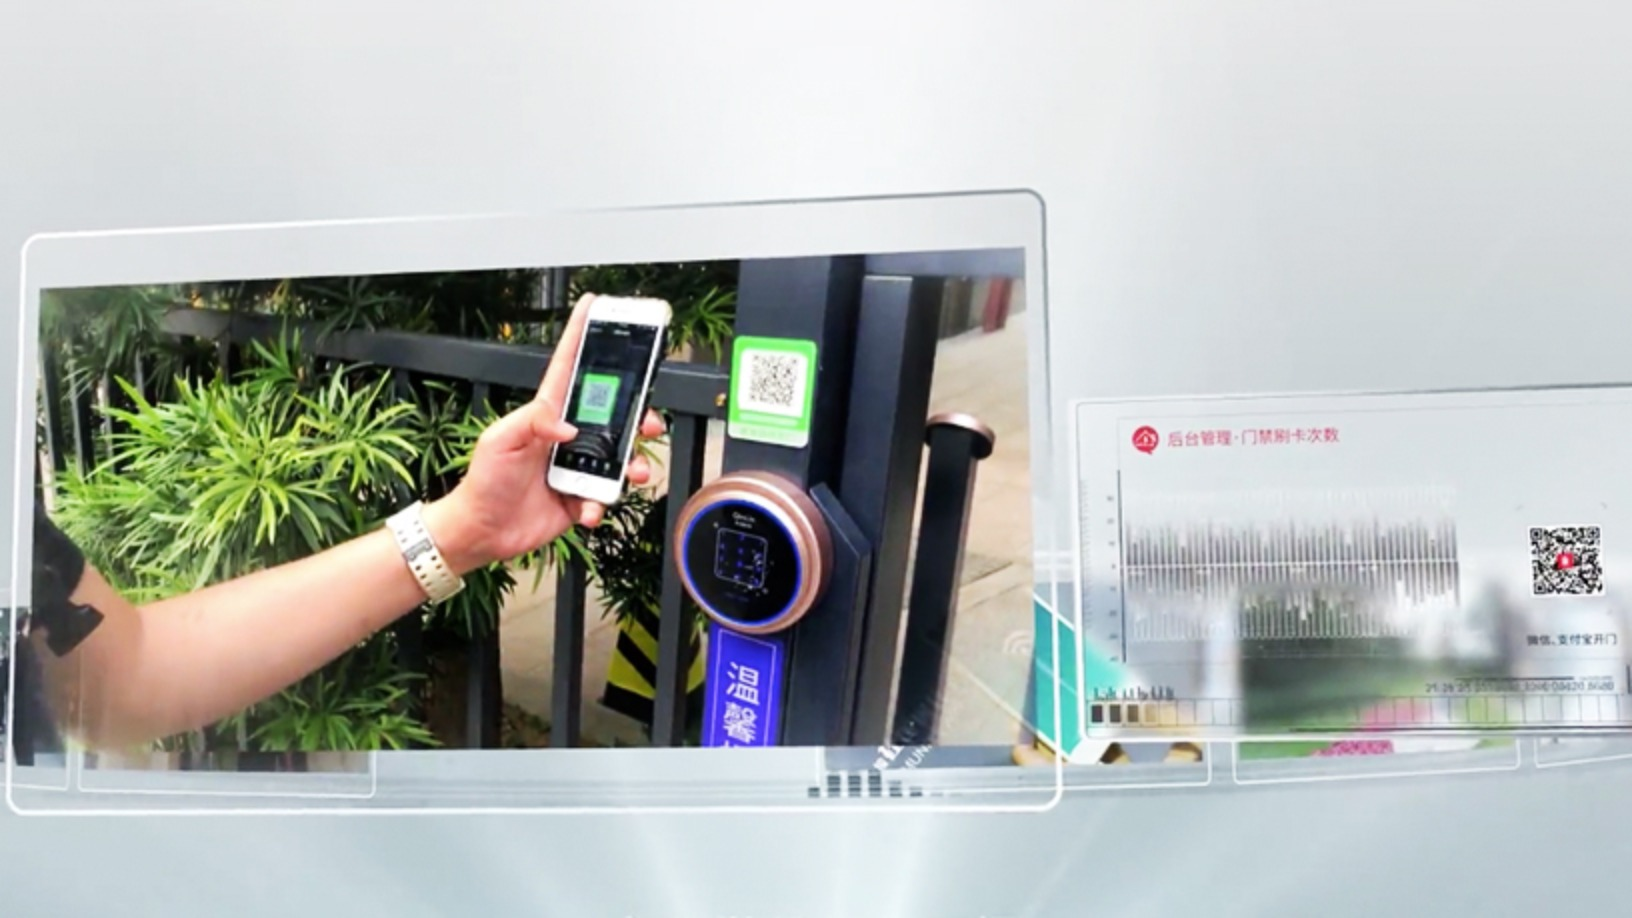 QinLin Tech gets advertisers to pay for your local security systems